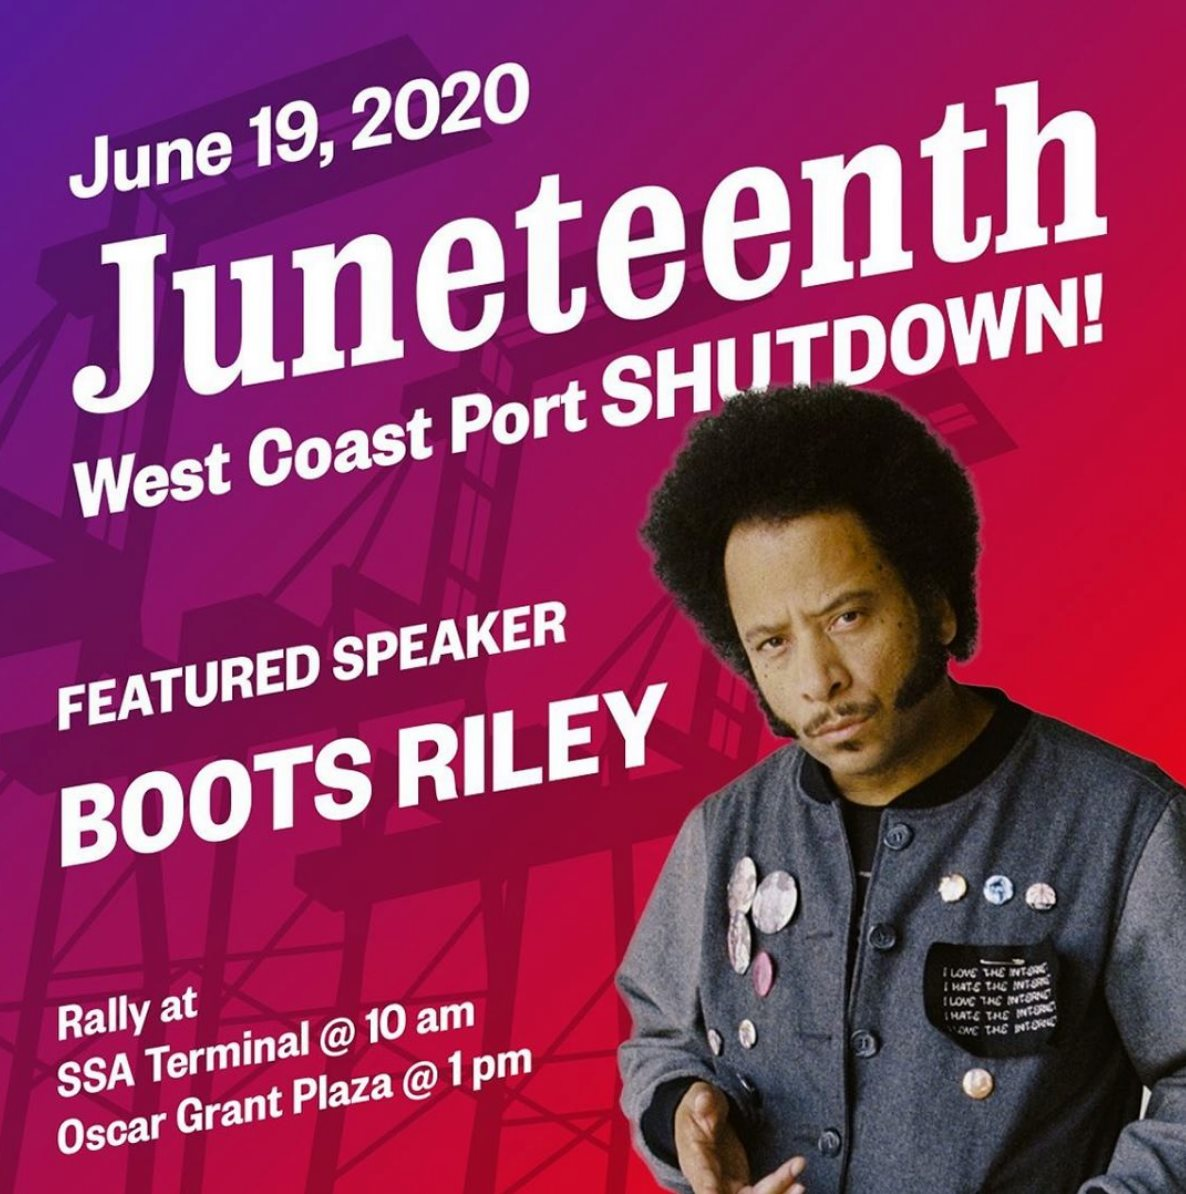 East Bay DSA was part of this event,